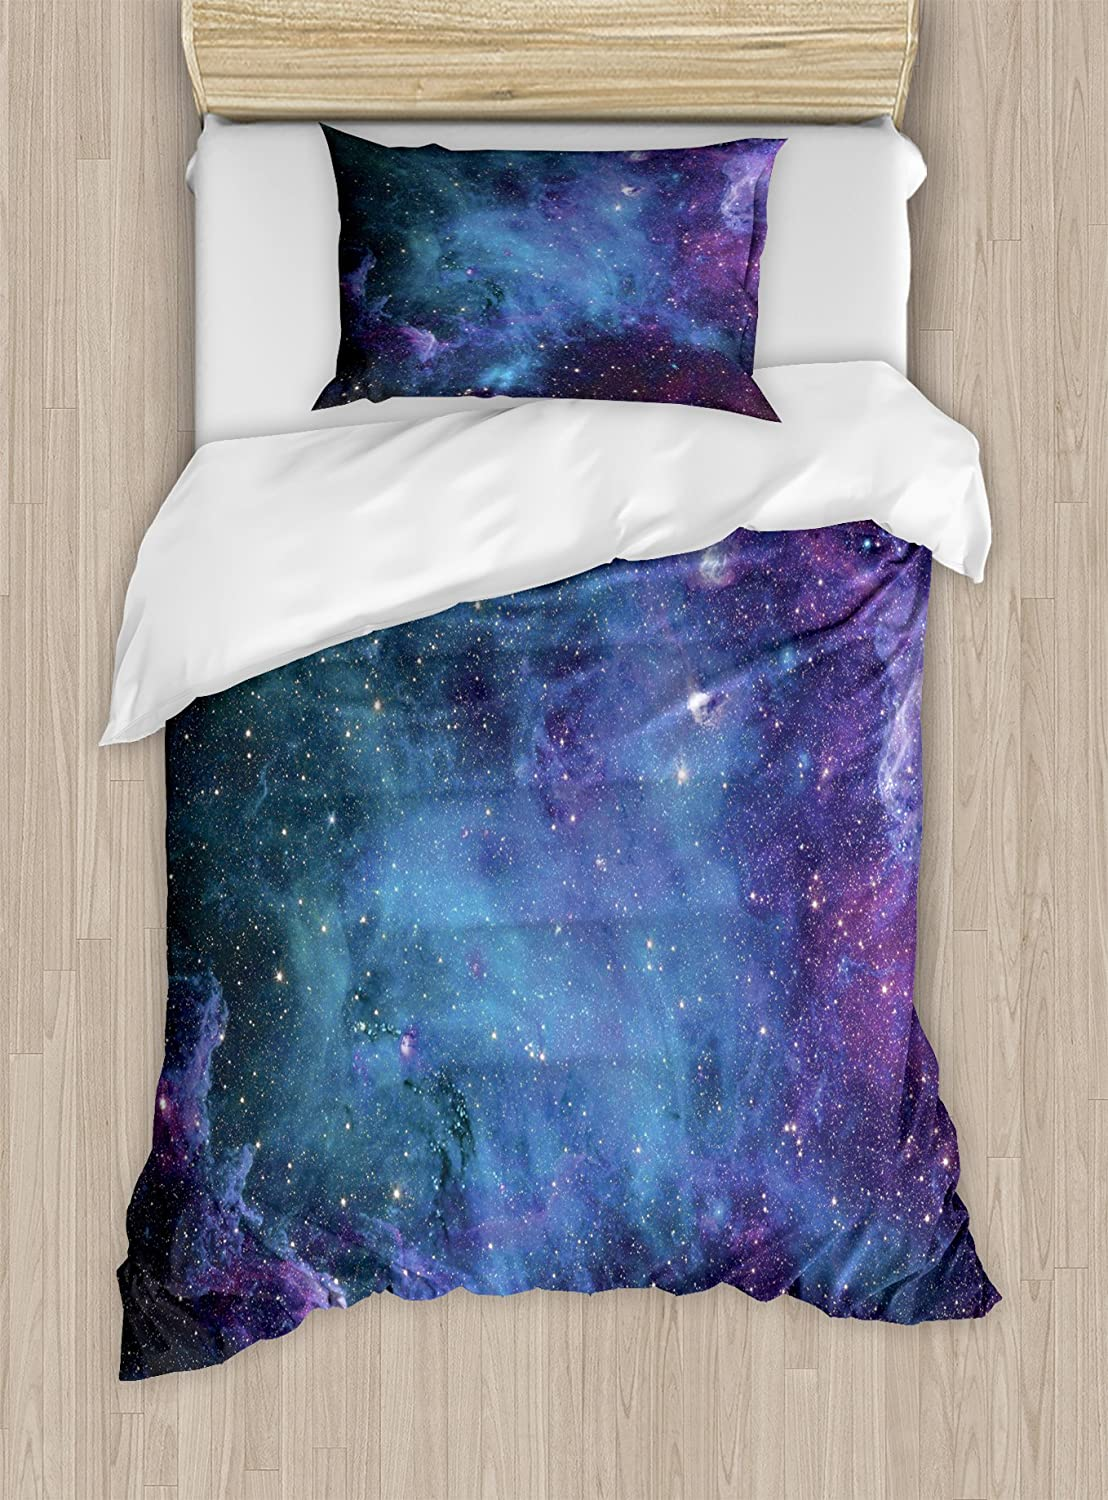 Ambesonne Outer Space Duvet Cover Set Twin Size, Galaxy Stars in Space Celestial Astronomic Planets of The Universe Milky Way Theme, A Decorative 2 Piece Bedding Set with 1 Pillow Sham, Navy Purple